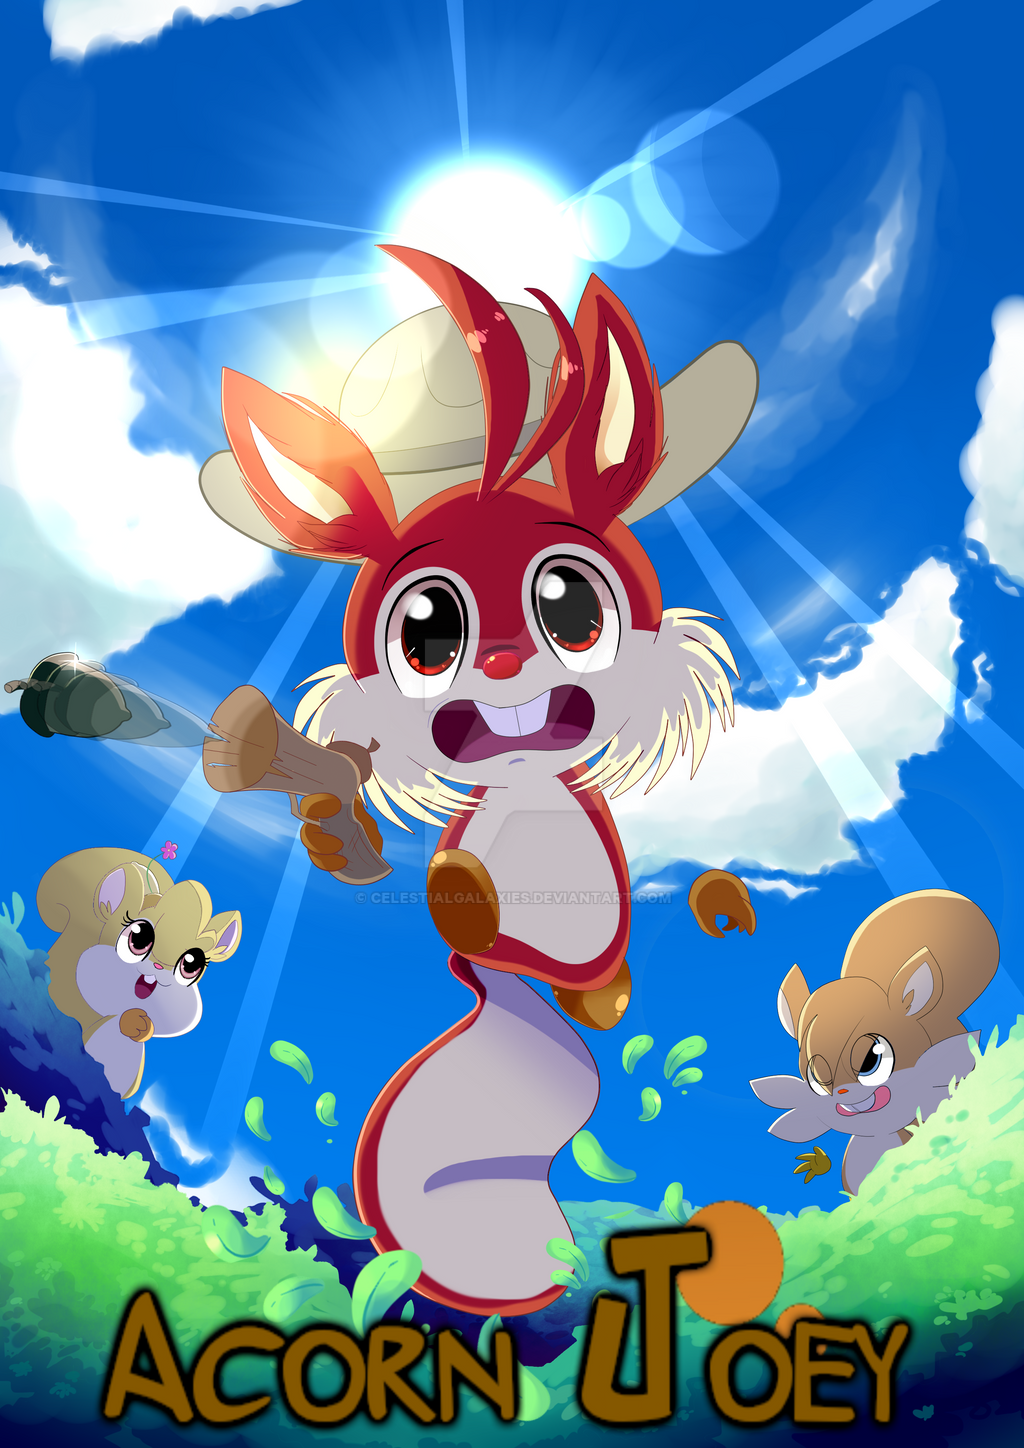 Acorn Joey by CelestialGalaxies